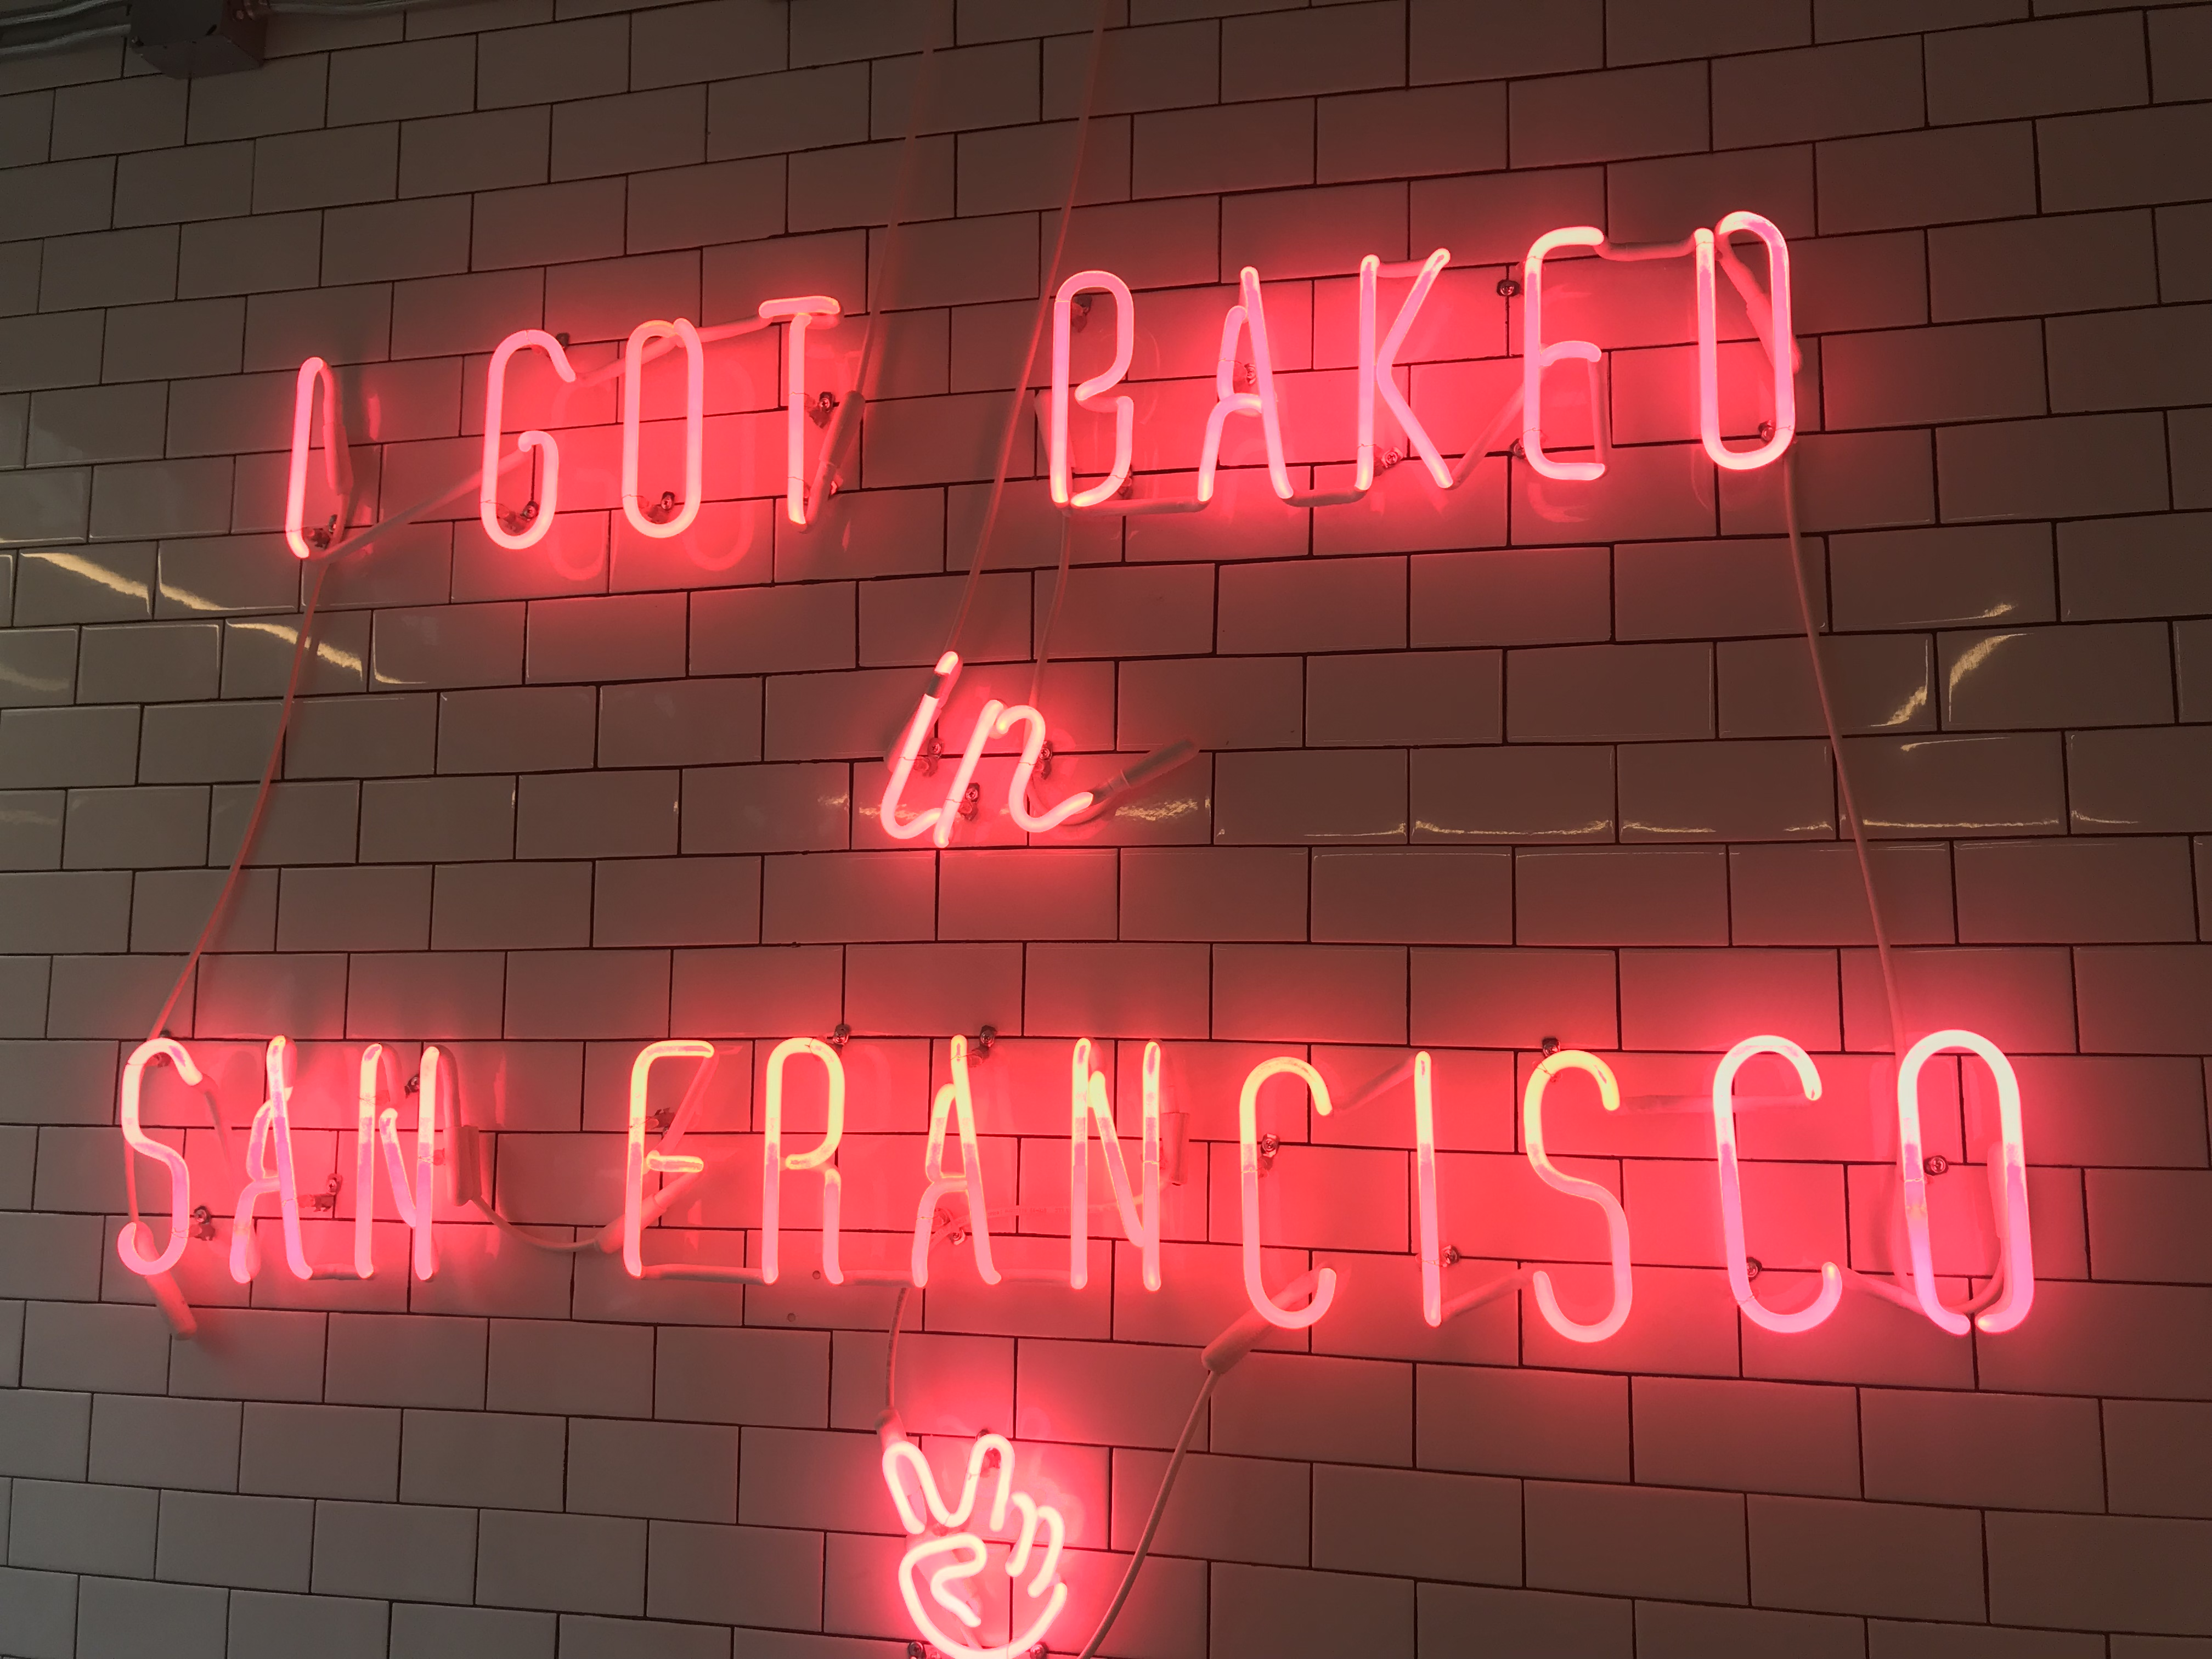 Mr Holme's Bakehouse, San Francisco